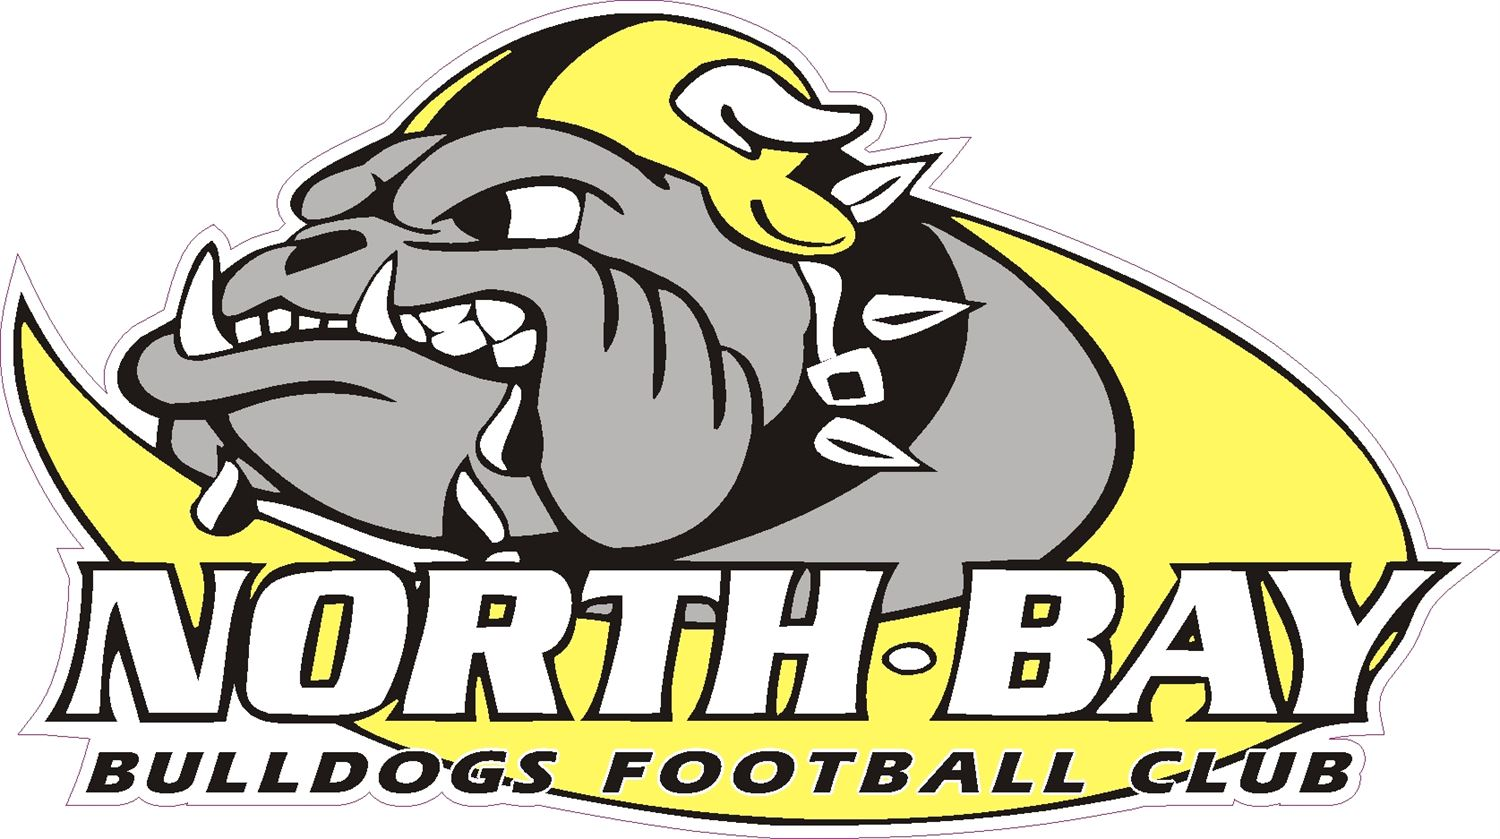 North Bay Bulldogs Football Club - North Bay Bulldogs